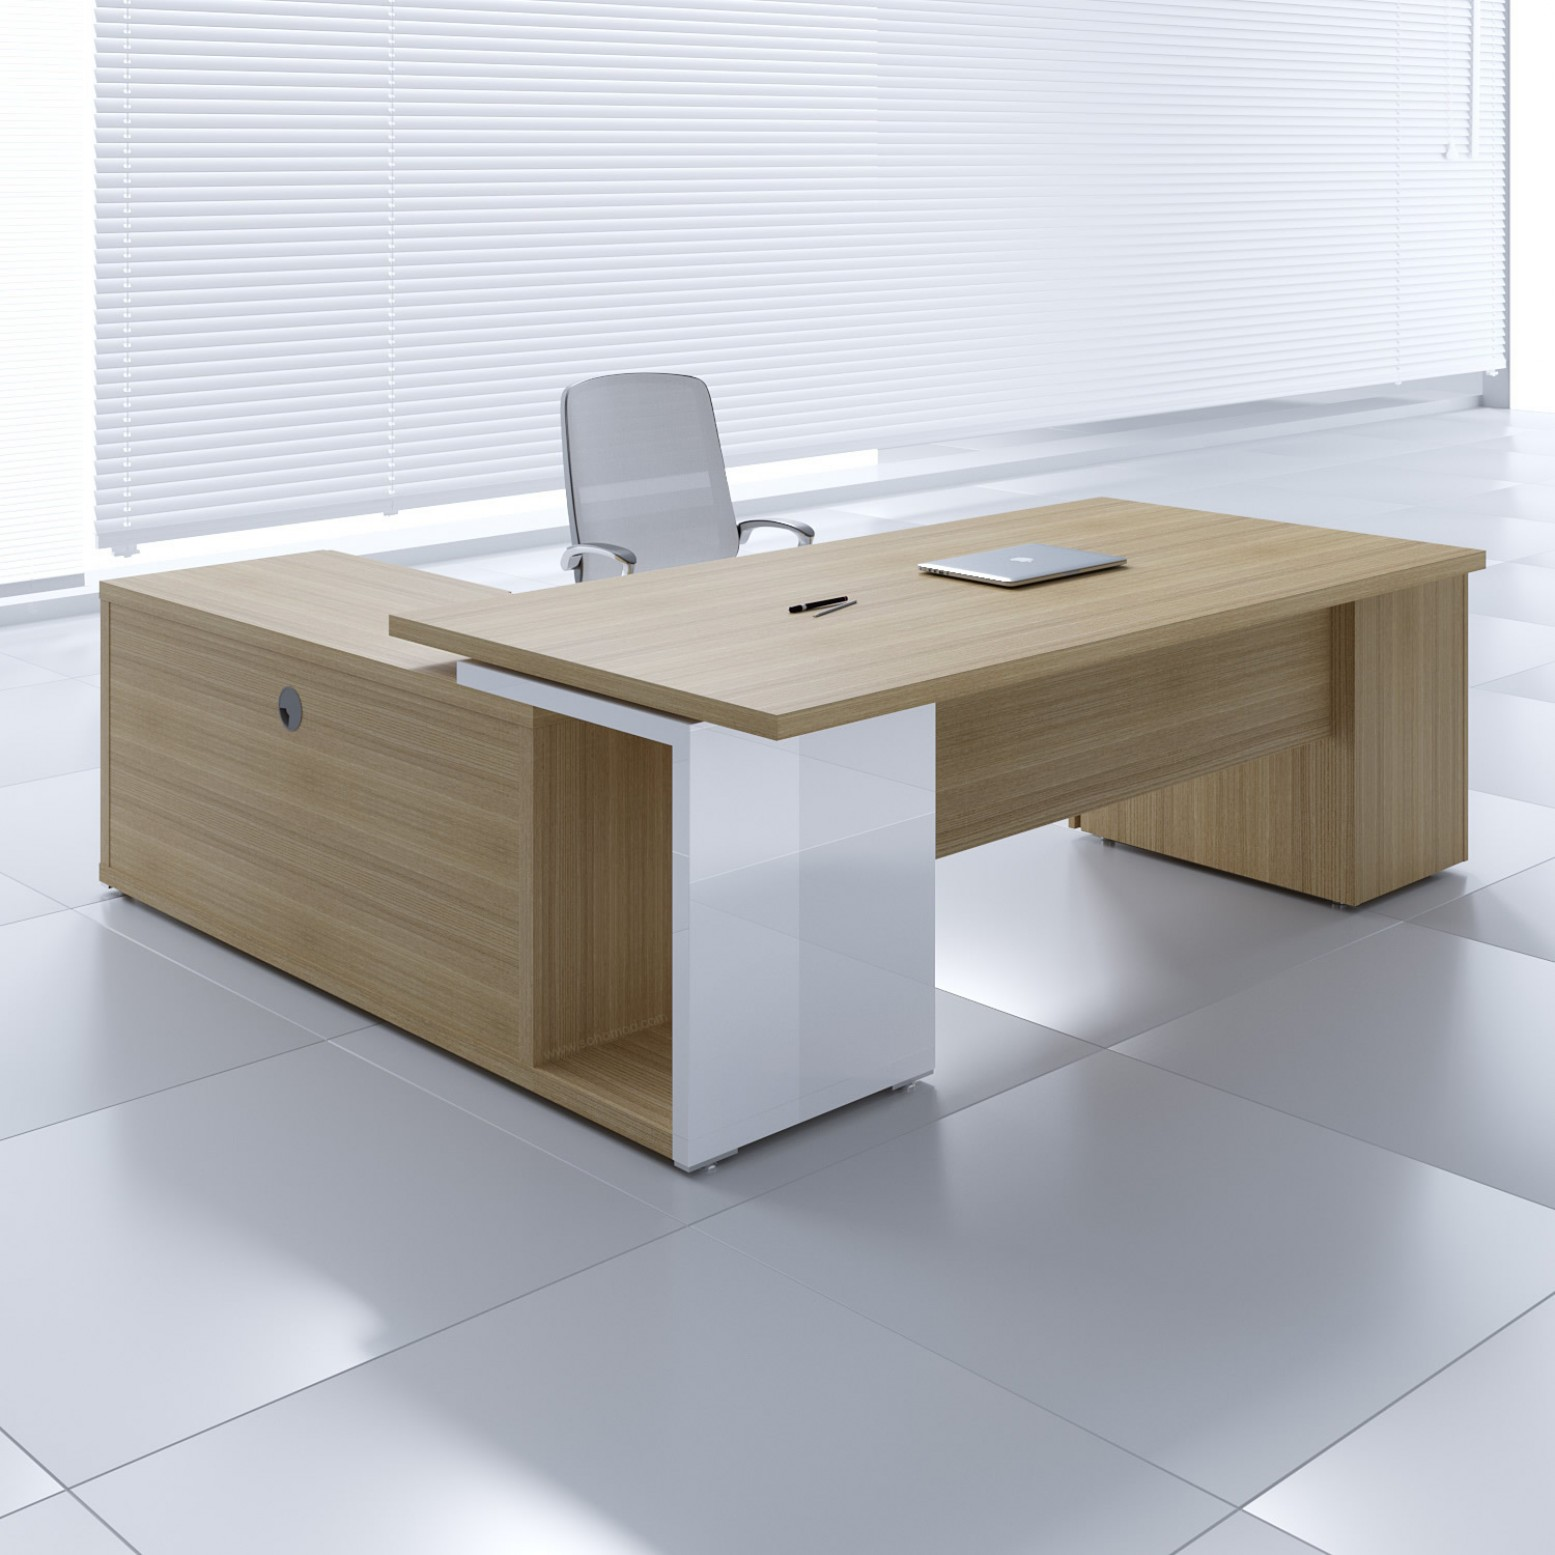 Mito Executive Desk w/Managerial Side Storage + Pedestal MIT1KD, Light  Sycamore + White High Gloss